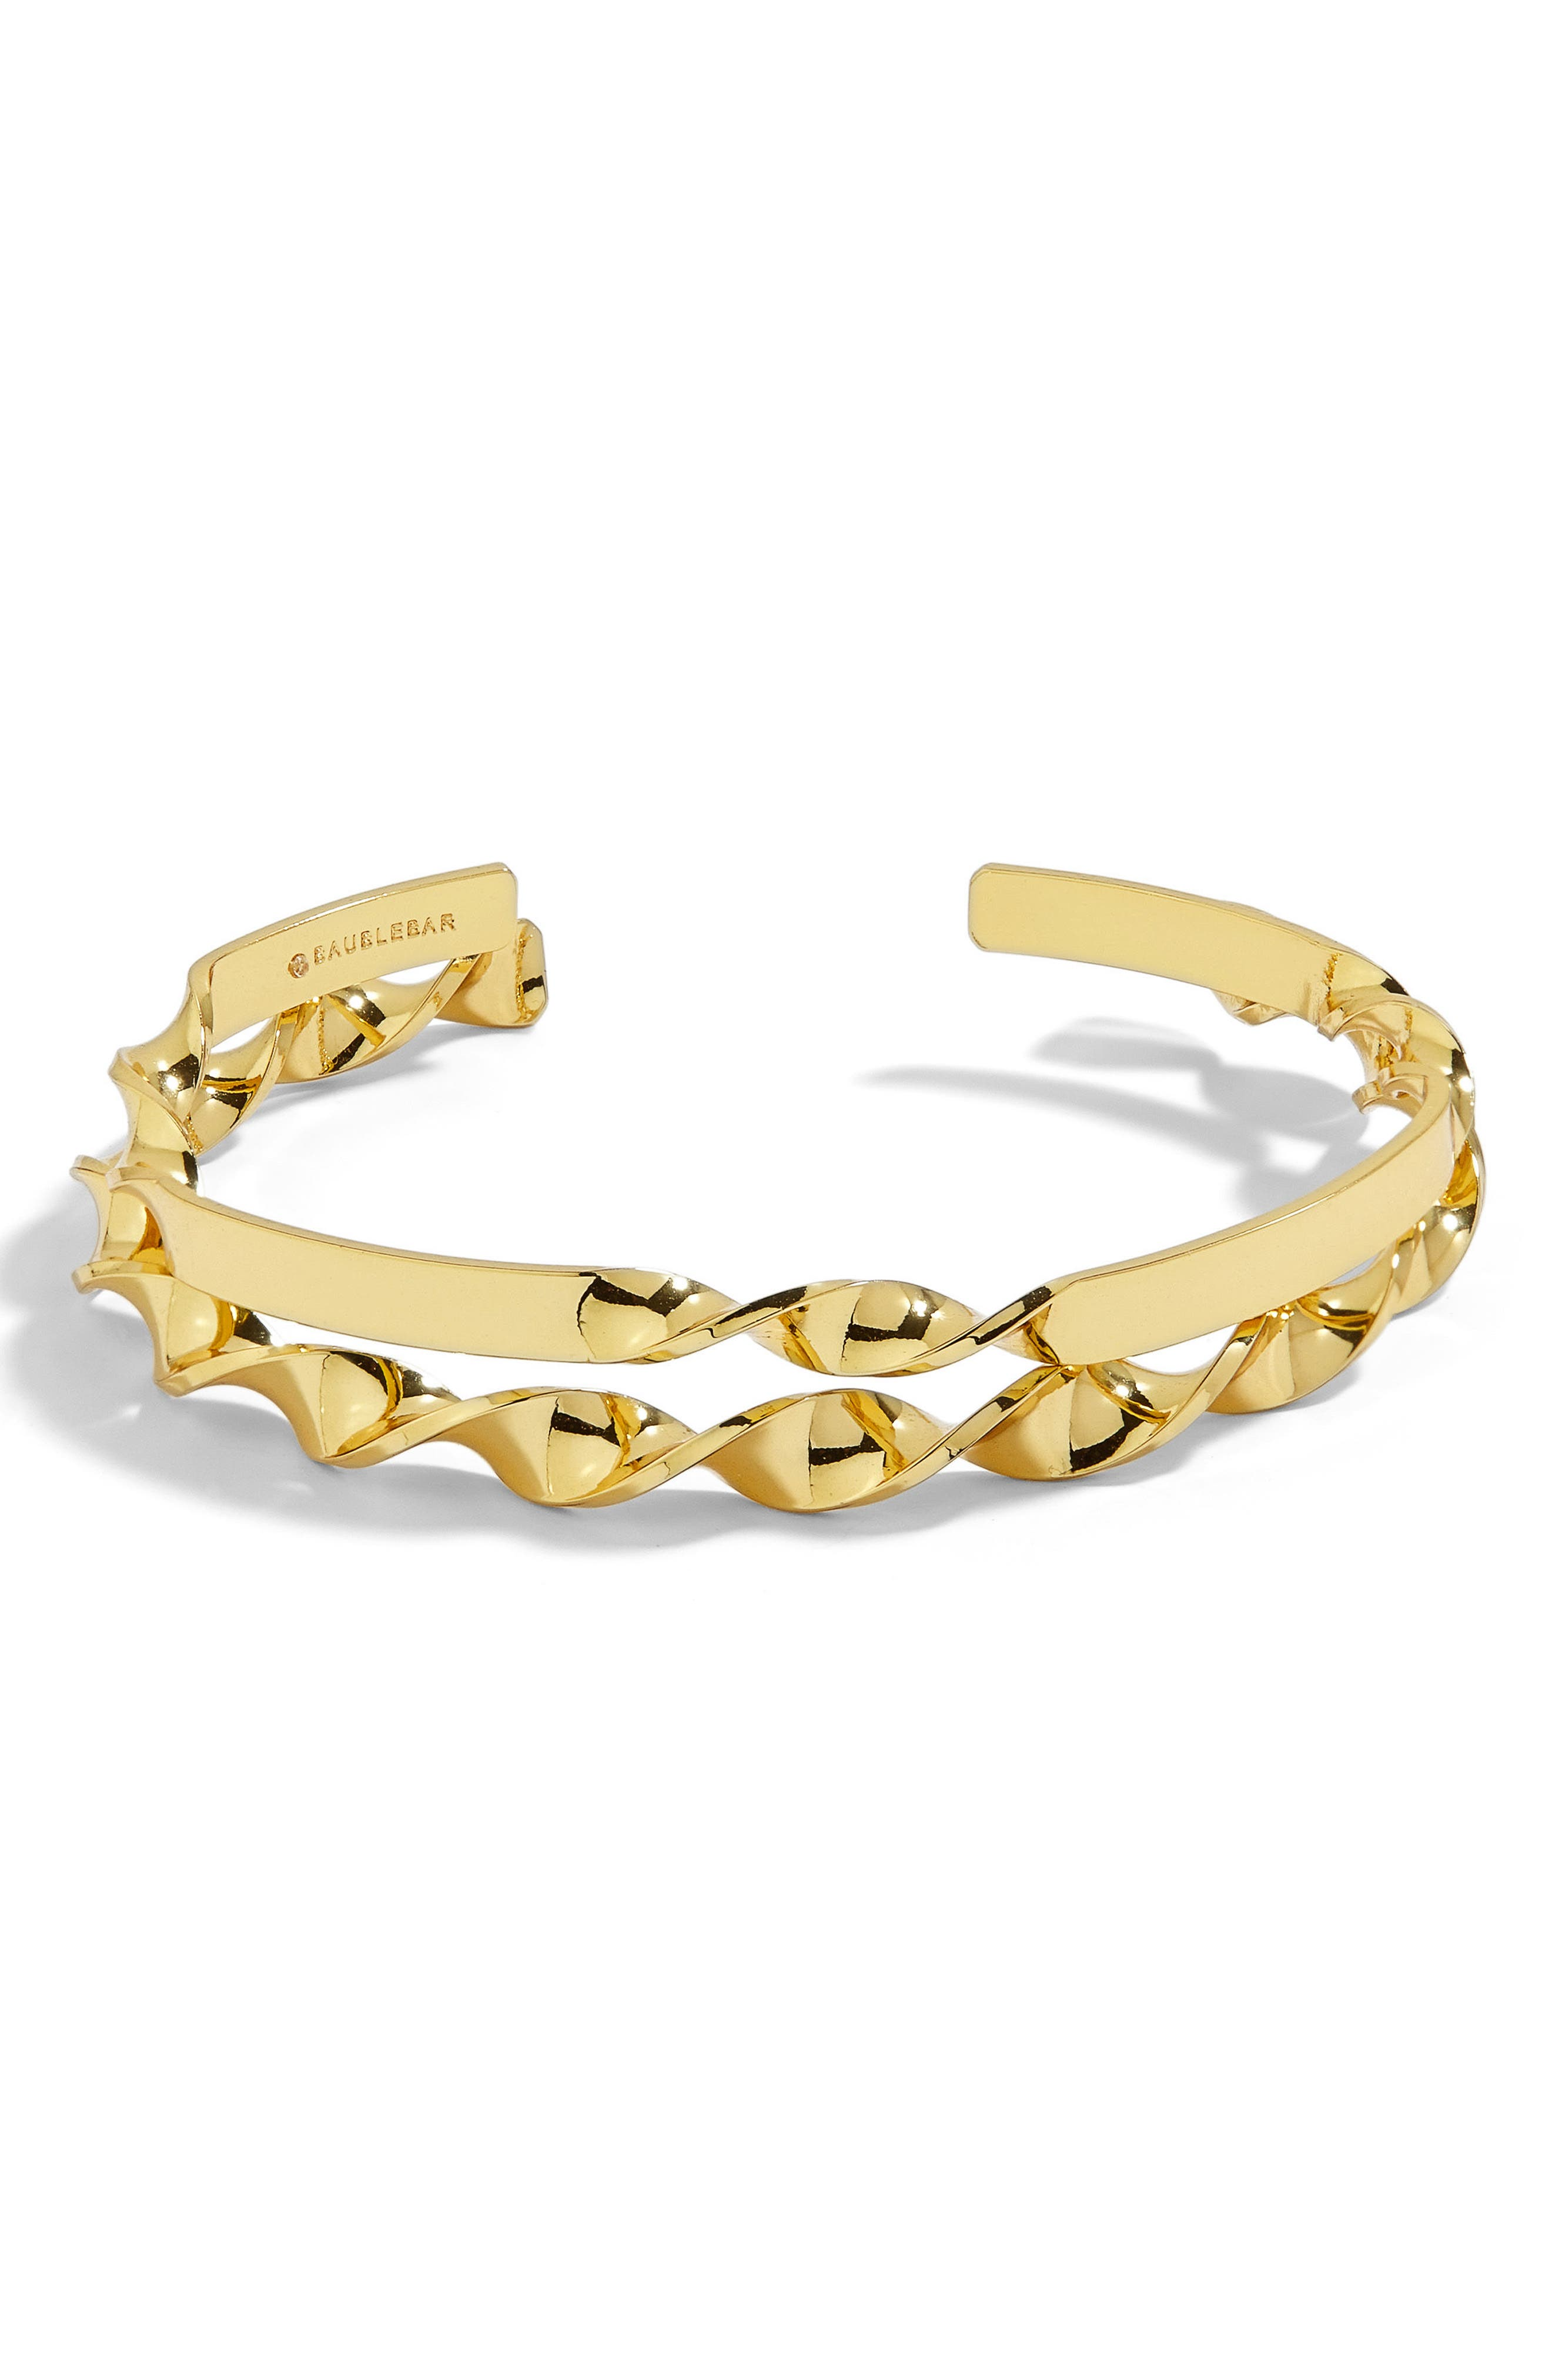 BAUBLEBAR,                             Narine Set of 2 Twisted Gold Cuff Bracelets,                             Main thumbnail 1, color,                             710